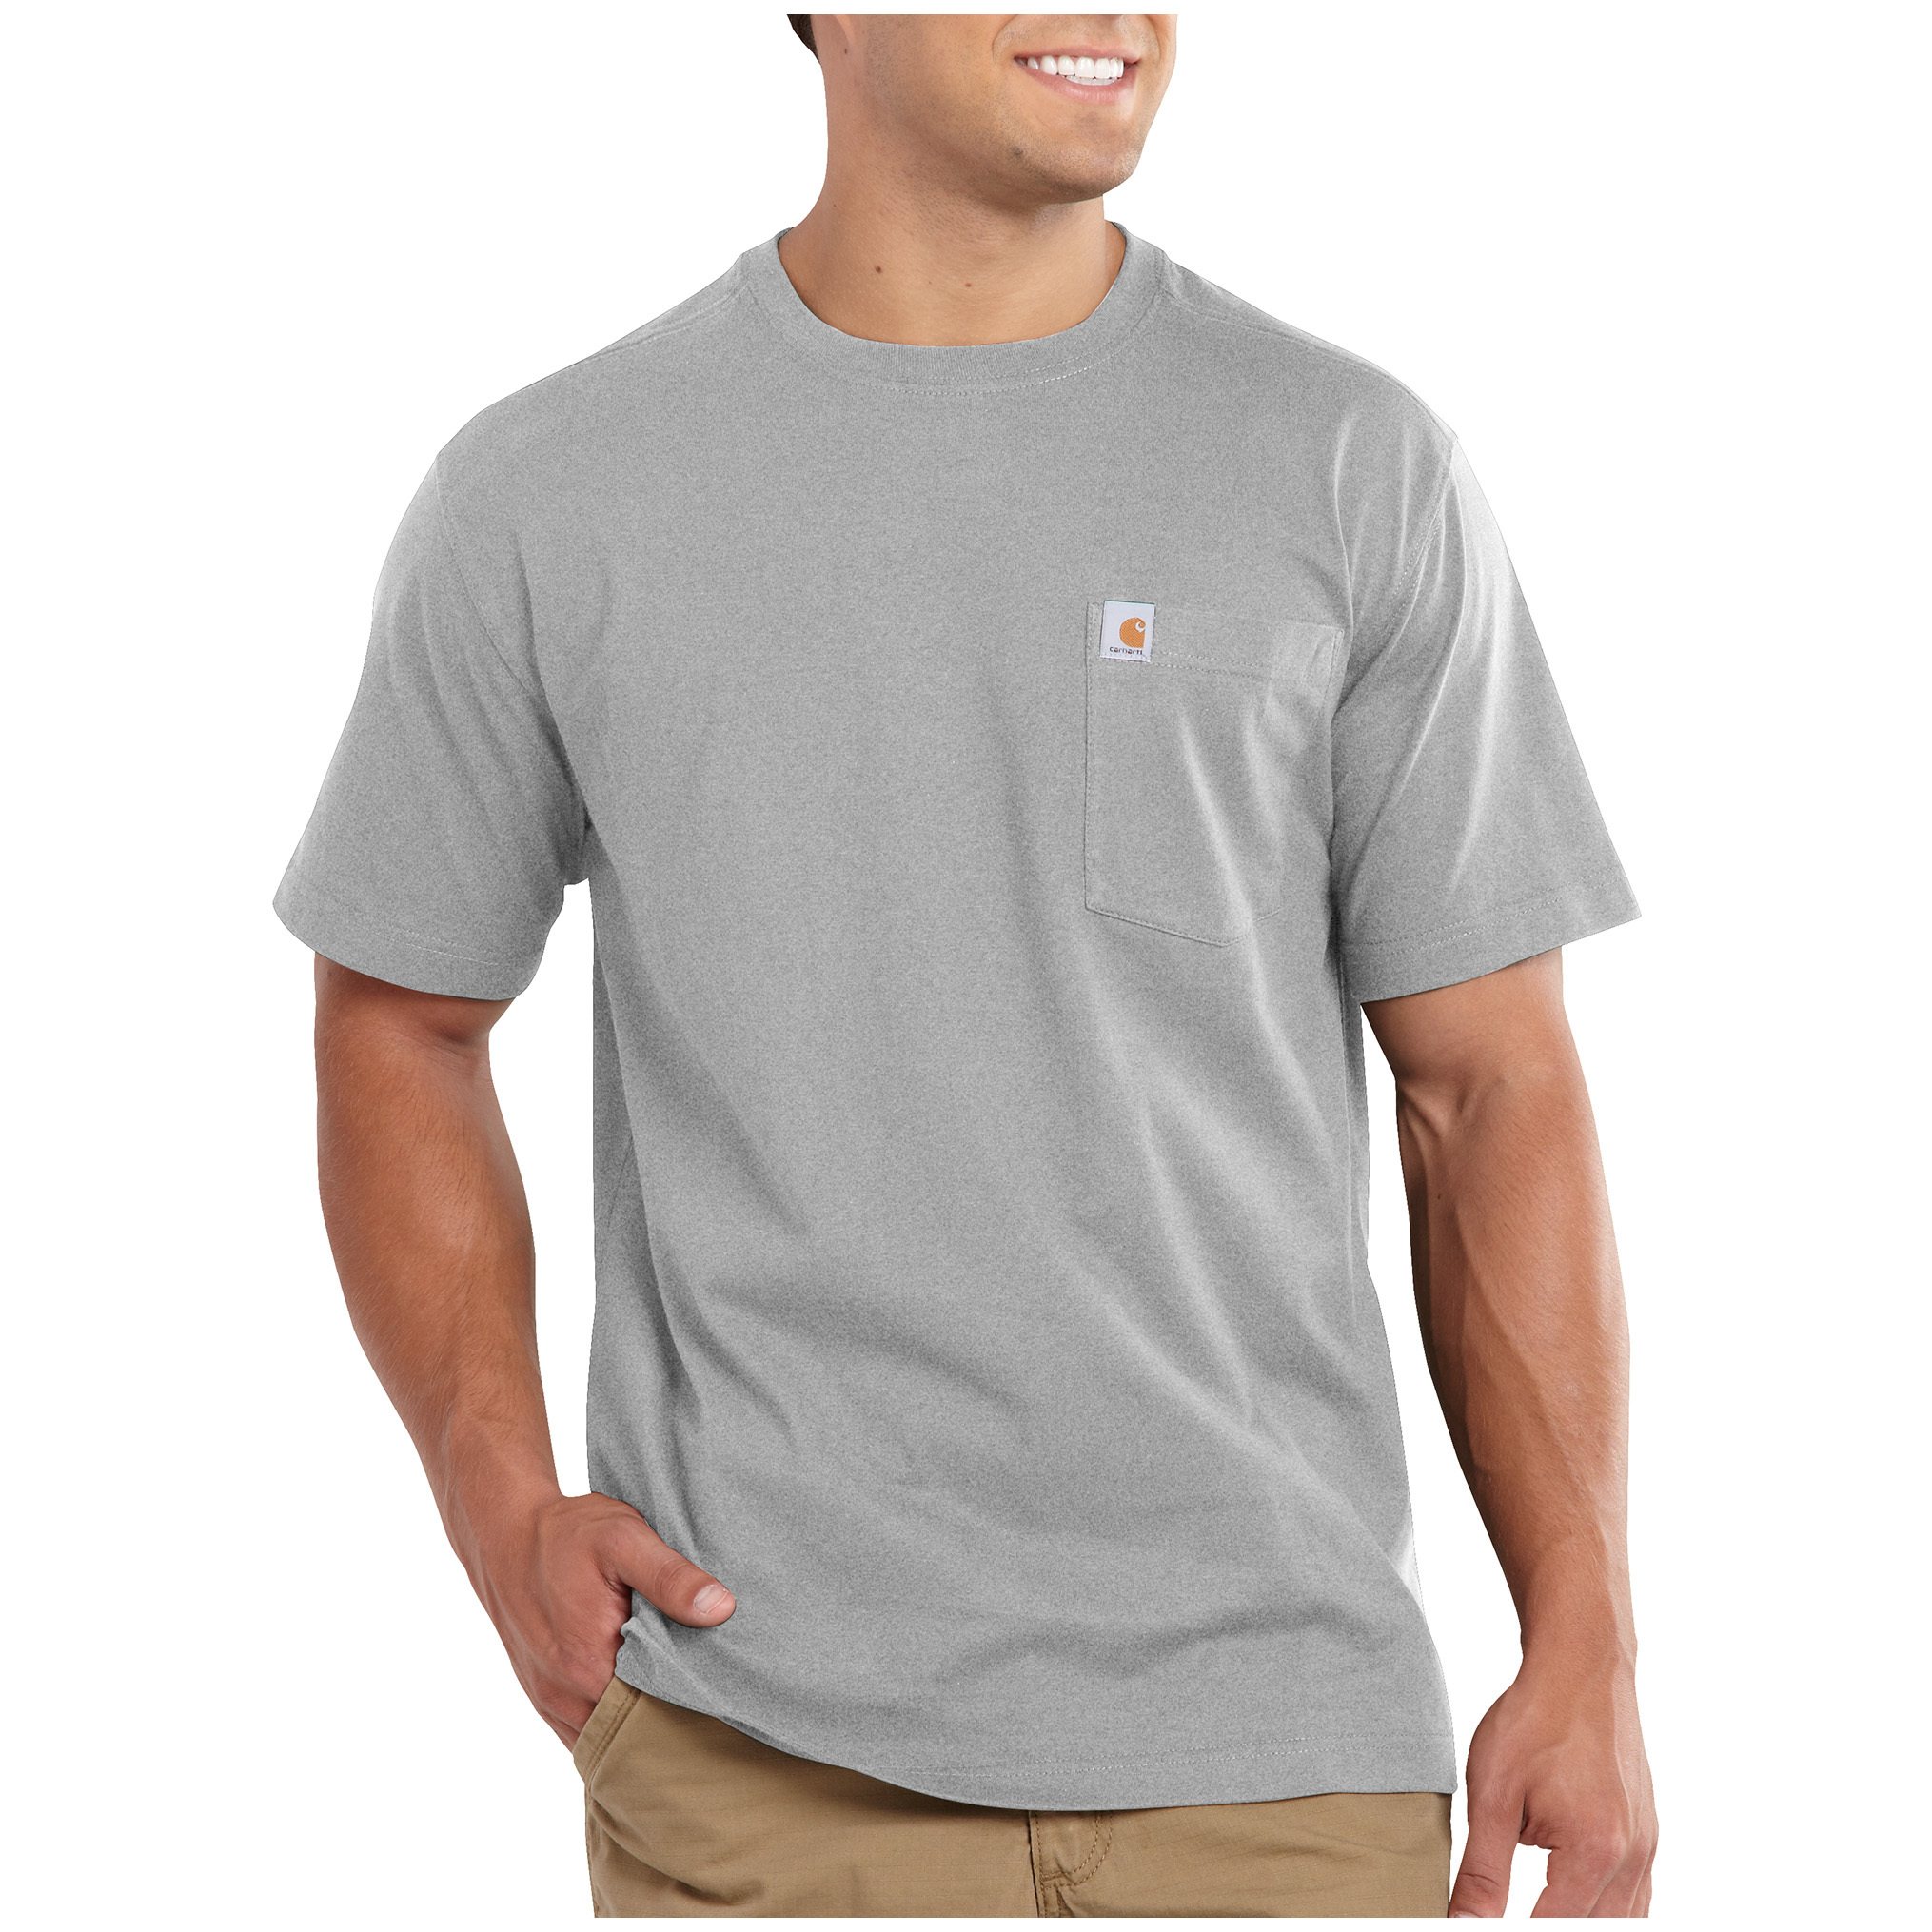 Carhartt Maddock Pocket Short-sleeve T-shirt. Feel good, work harder. That's the concept behind Carhartt's Maddock Short-sleeved Pocket T-shirt.More:5-oz. 100% ring-spun cotton jersey knit Rib knit crewneck Left chest pocket Rolled forward shoulder enhances comfort Side-seamed construction minimizes twisting Tagless neck label Machine wash / dry. Imported. State Color and Size, as available in the Shopping Cart. - $12.99